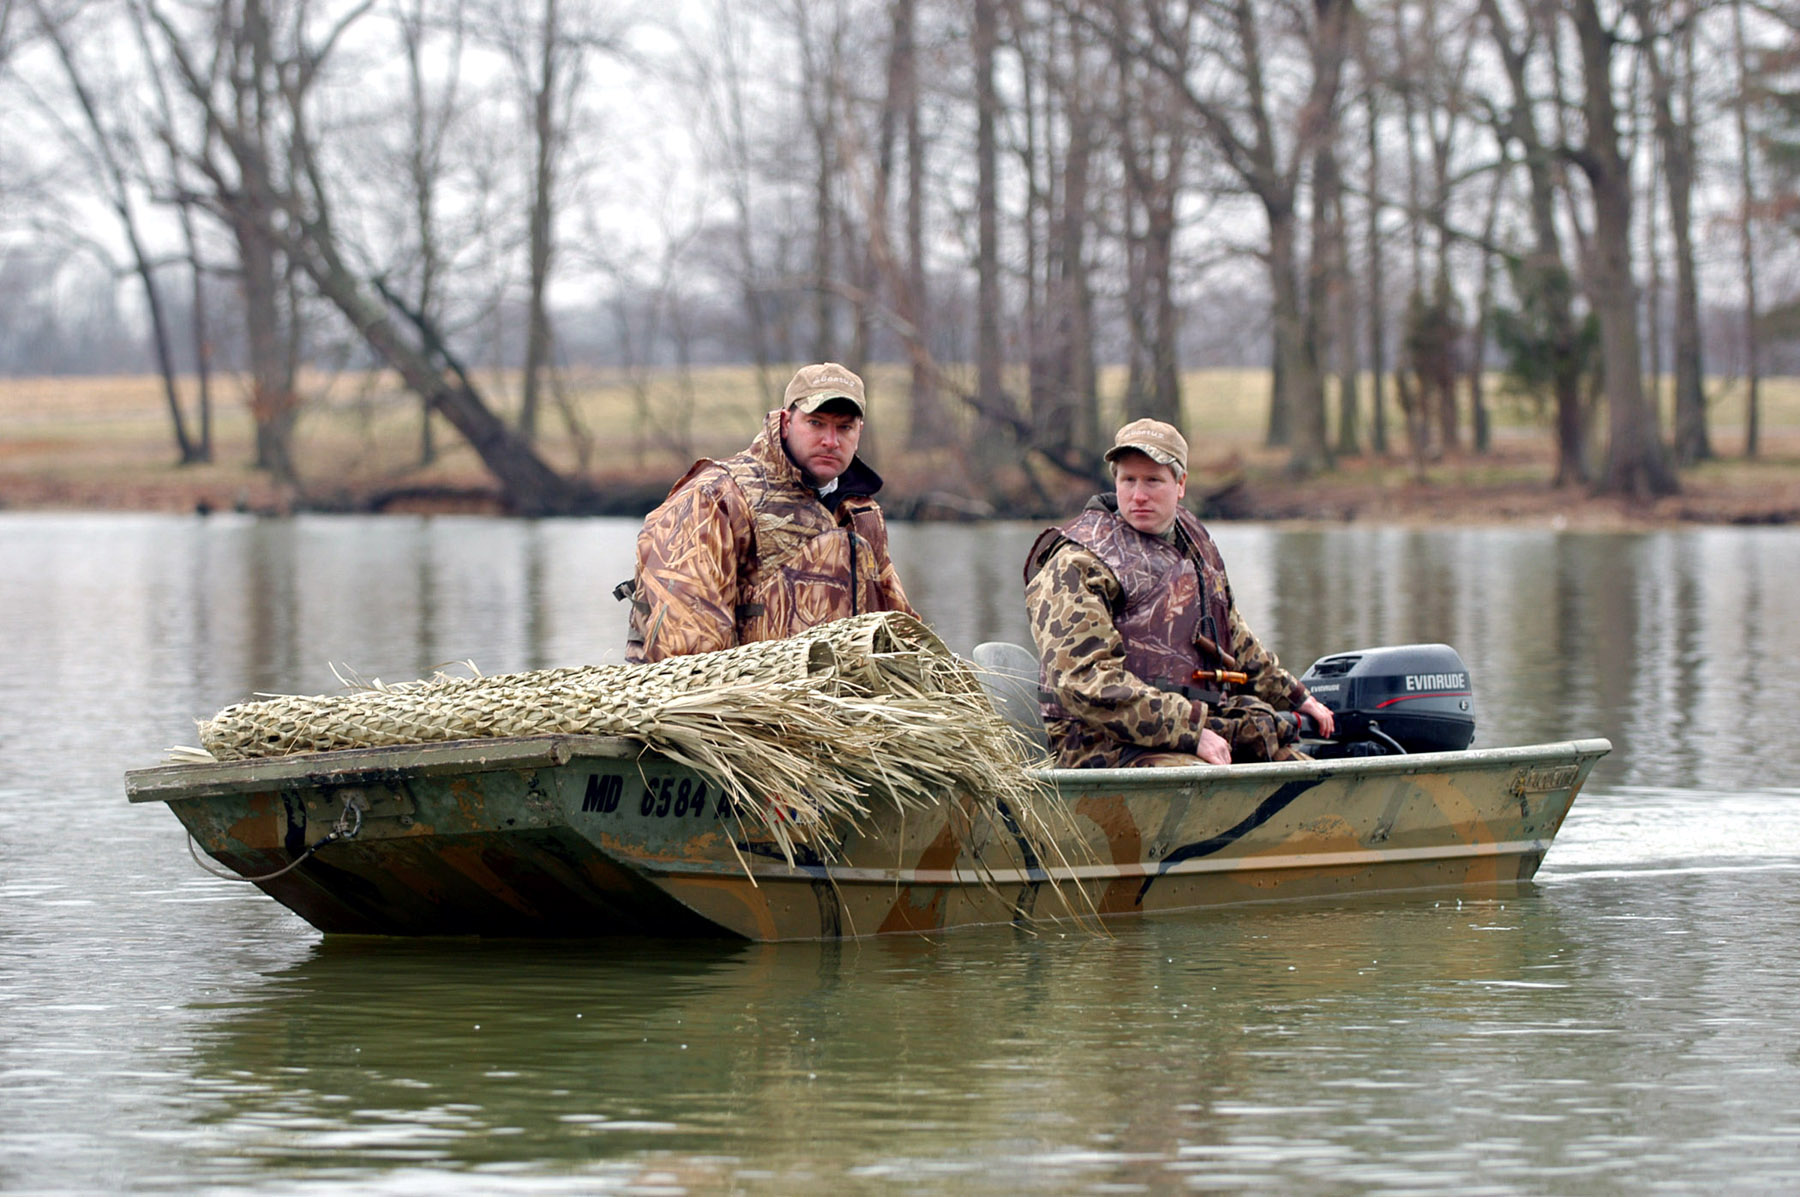 on you duck junk boat plans well blinds as homemade blind for her frame